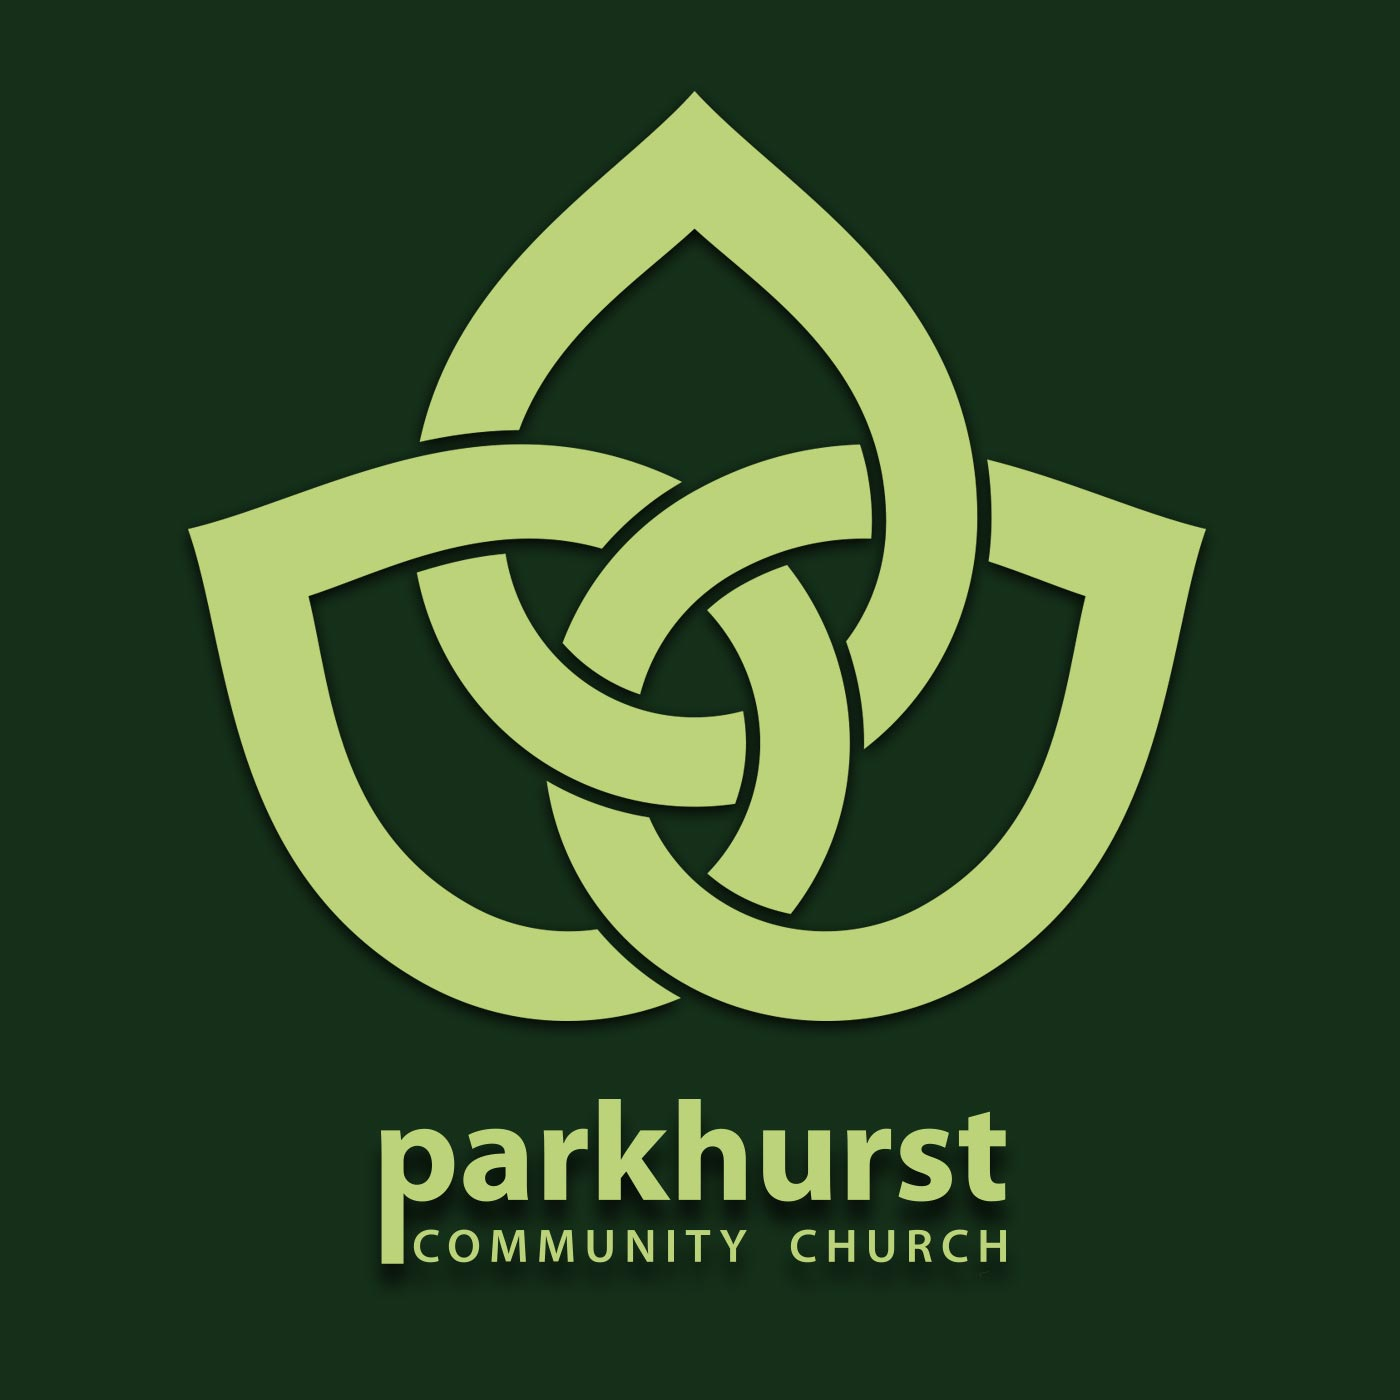 Parkhurst Community Church